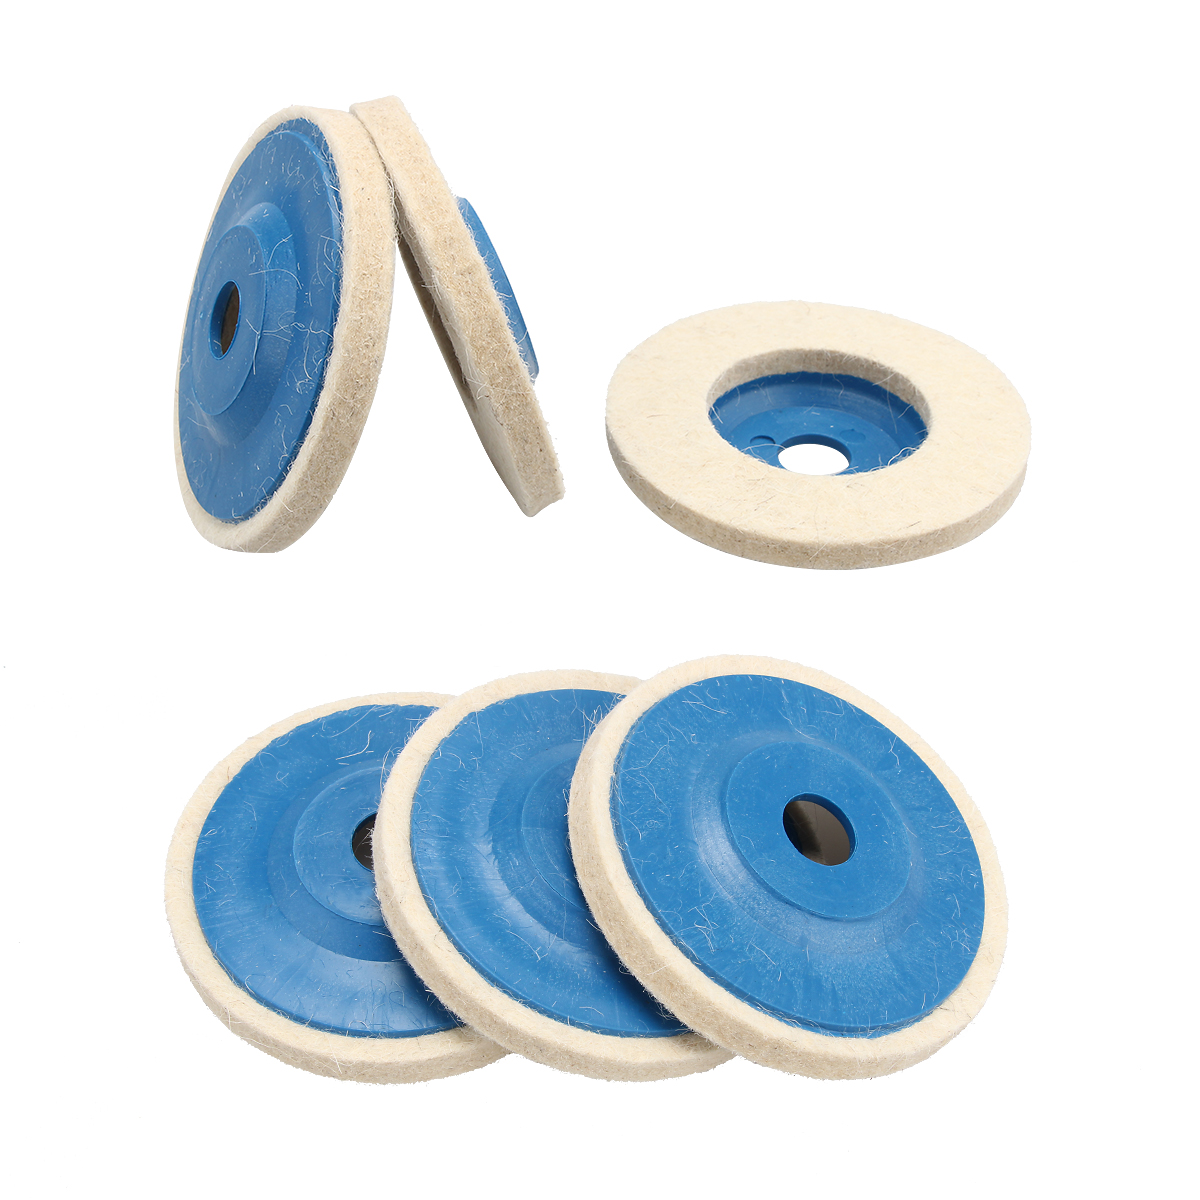 1/3PC 4 Inch Wool Polishing Wheel Buffing Pads 100mm Angle Grinder Wheel Felt Polishing Disc For Metal Marble Glass Ceramics